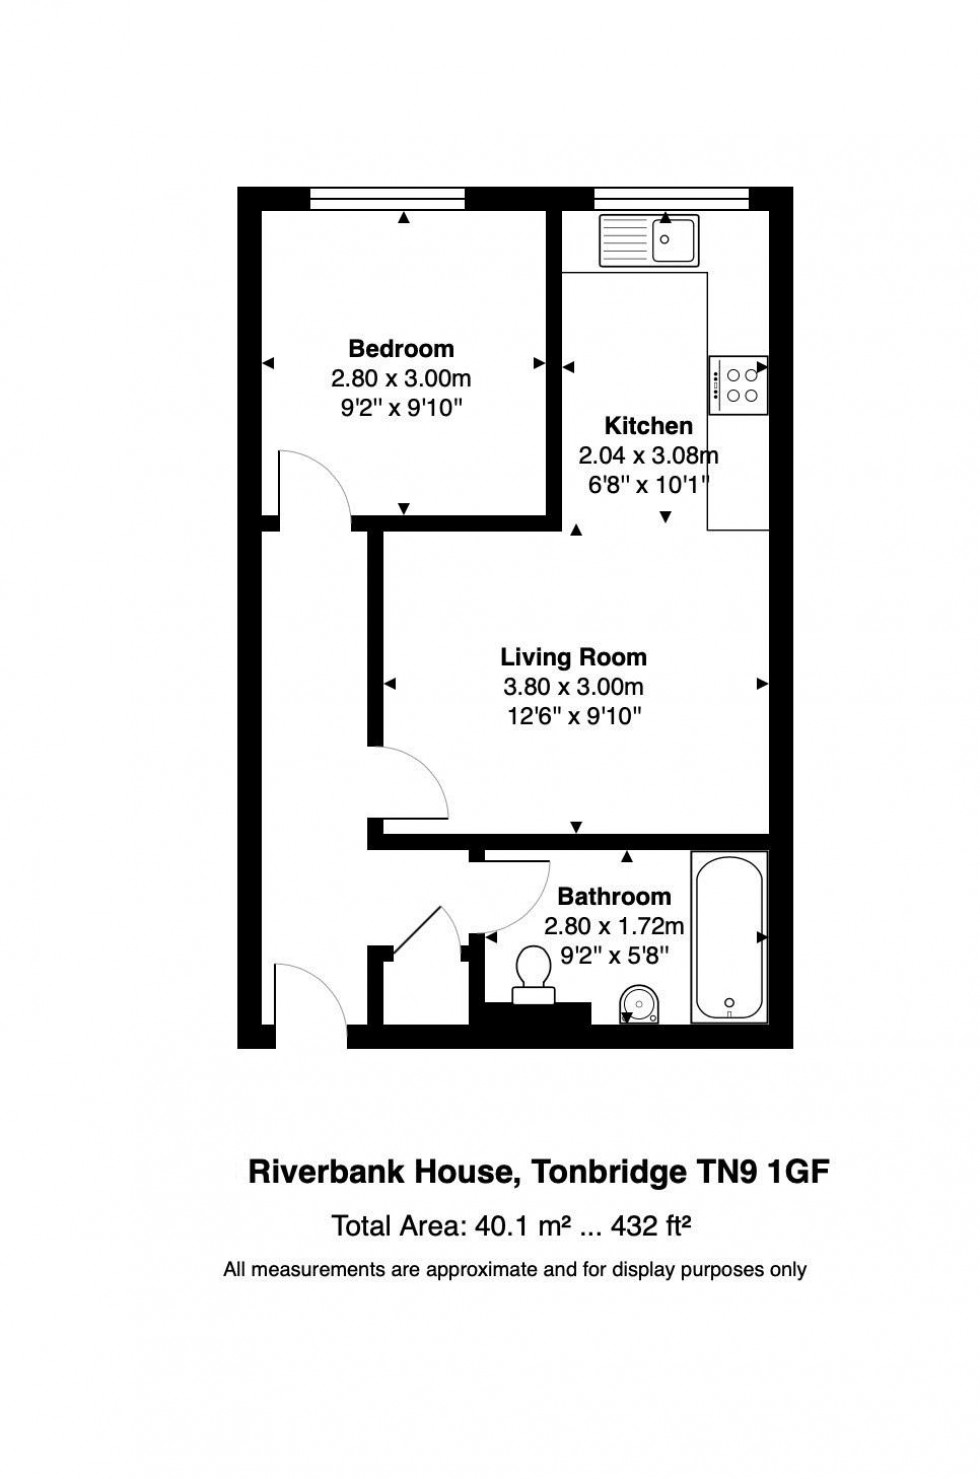 Floorplan for Modern 1 Bedroom Flat with Parking, Angel Lane, Tonbridge, TN9 1GF